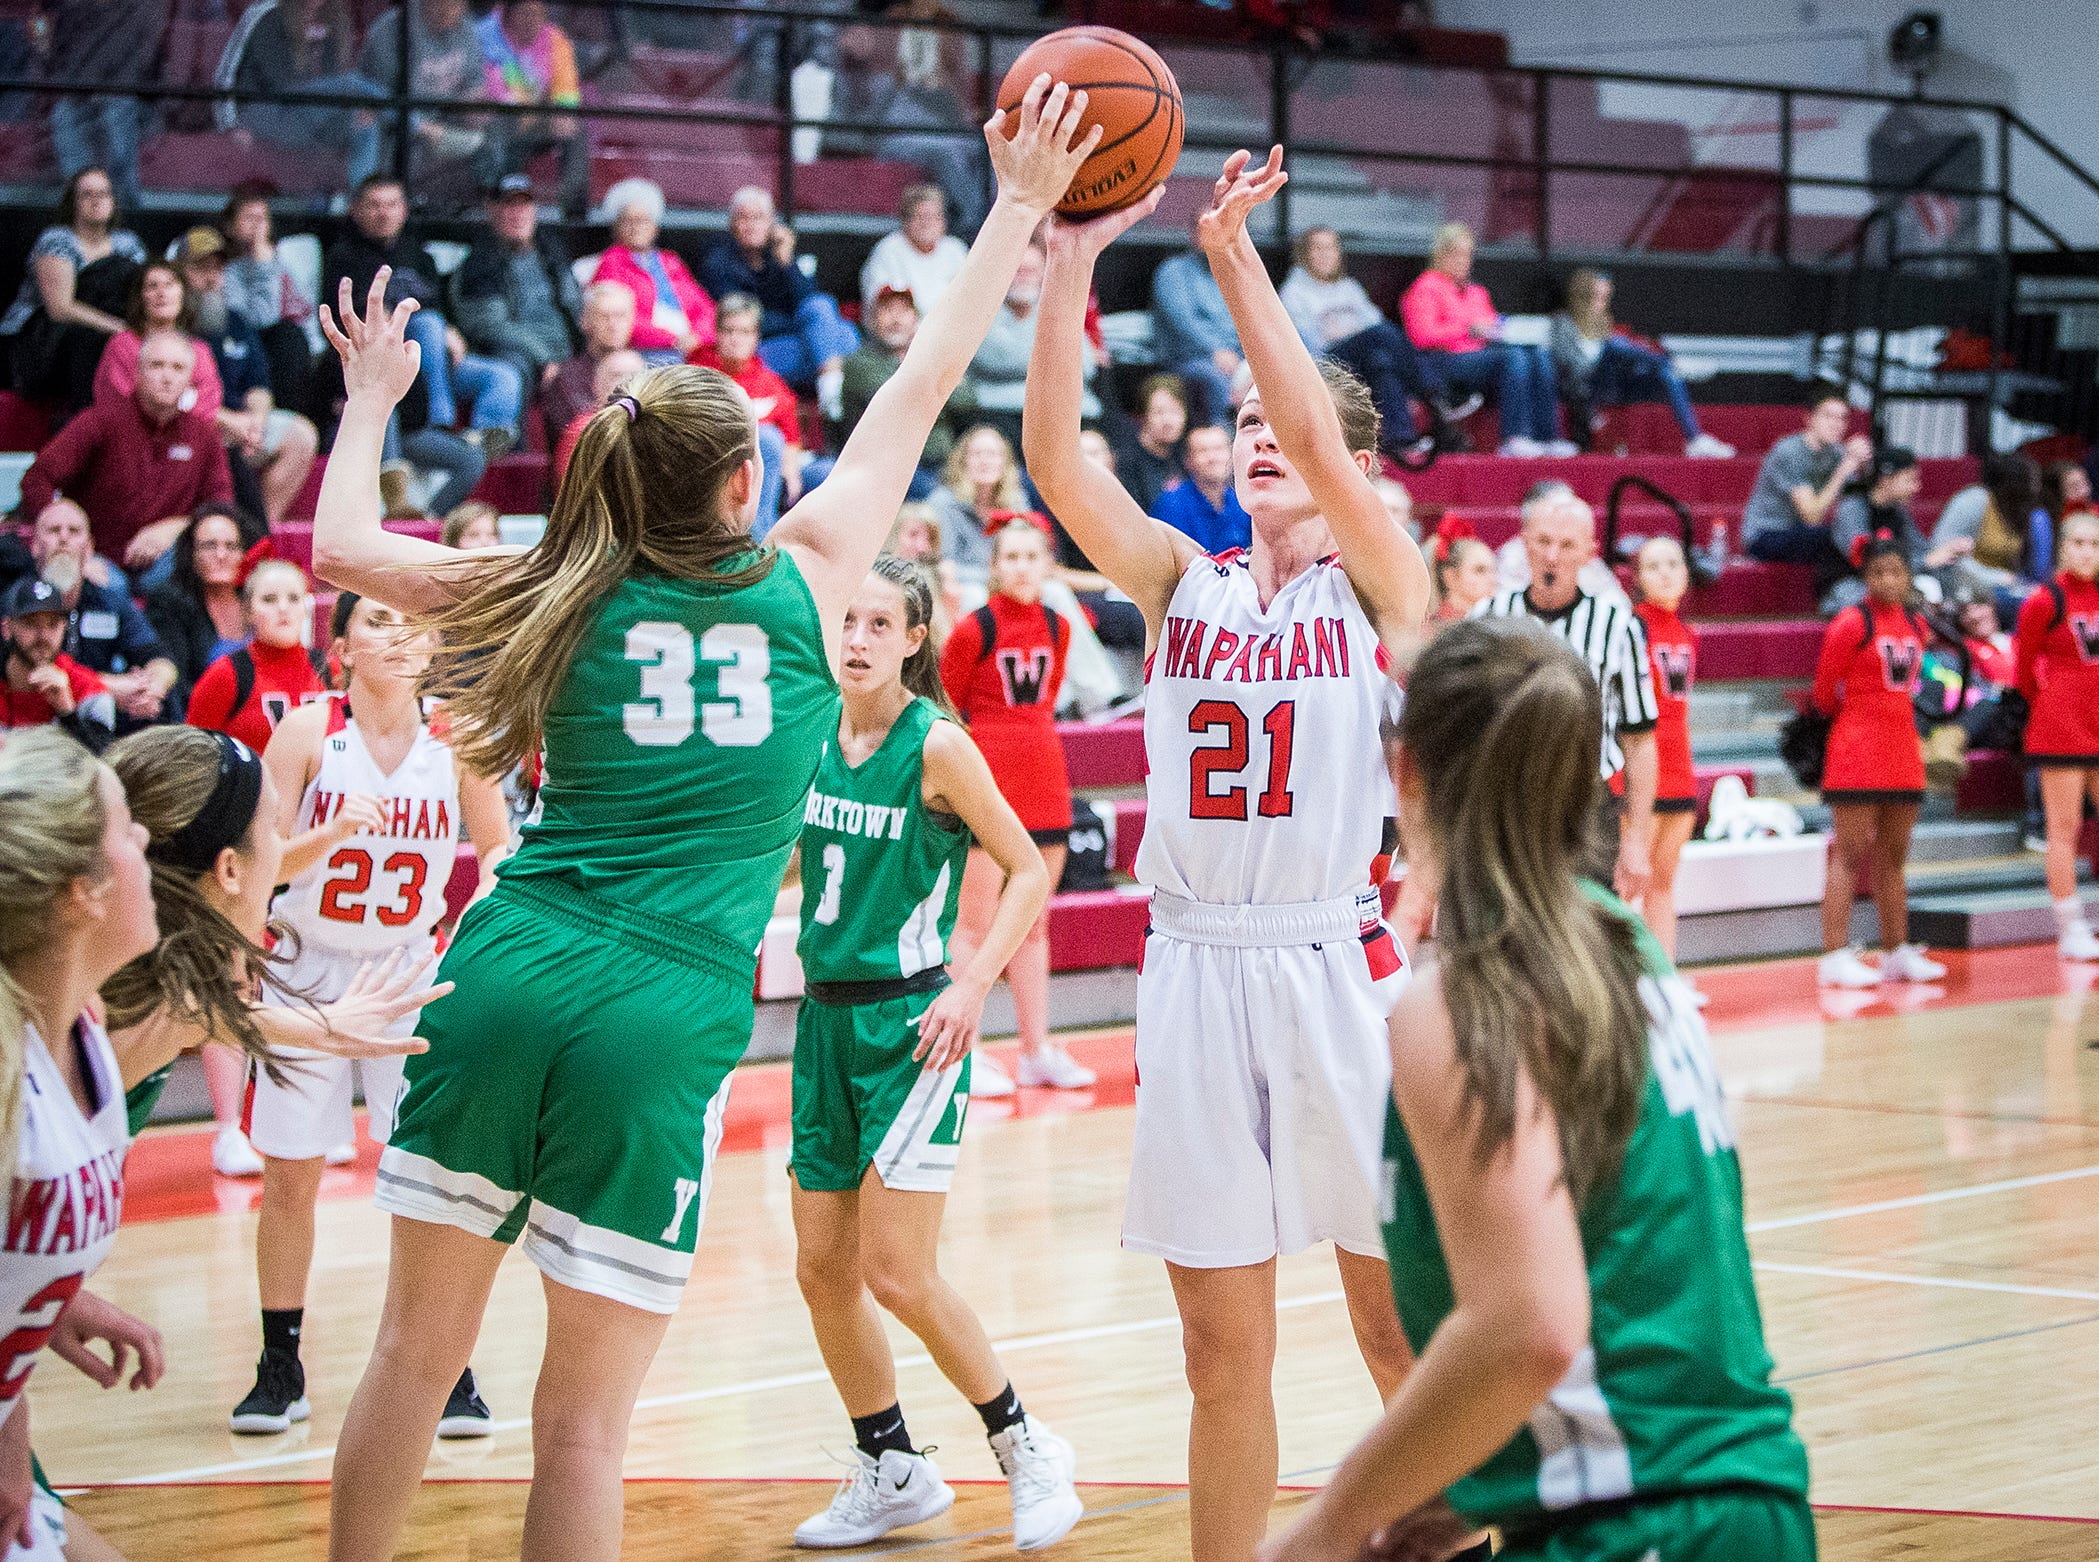 Wapahani's Sydney Cook shoots in the lane against Yorktown during their game at Wapahani High School Tuesday, Dec. 4, 2018.